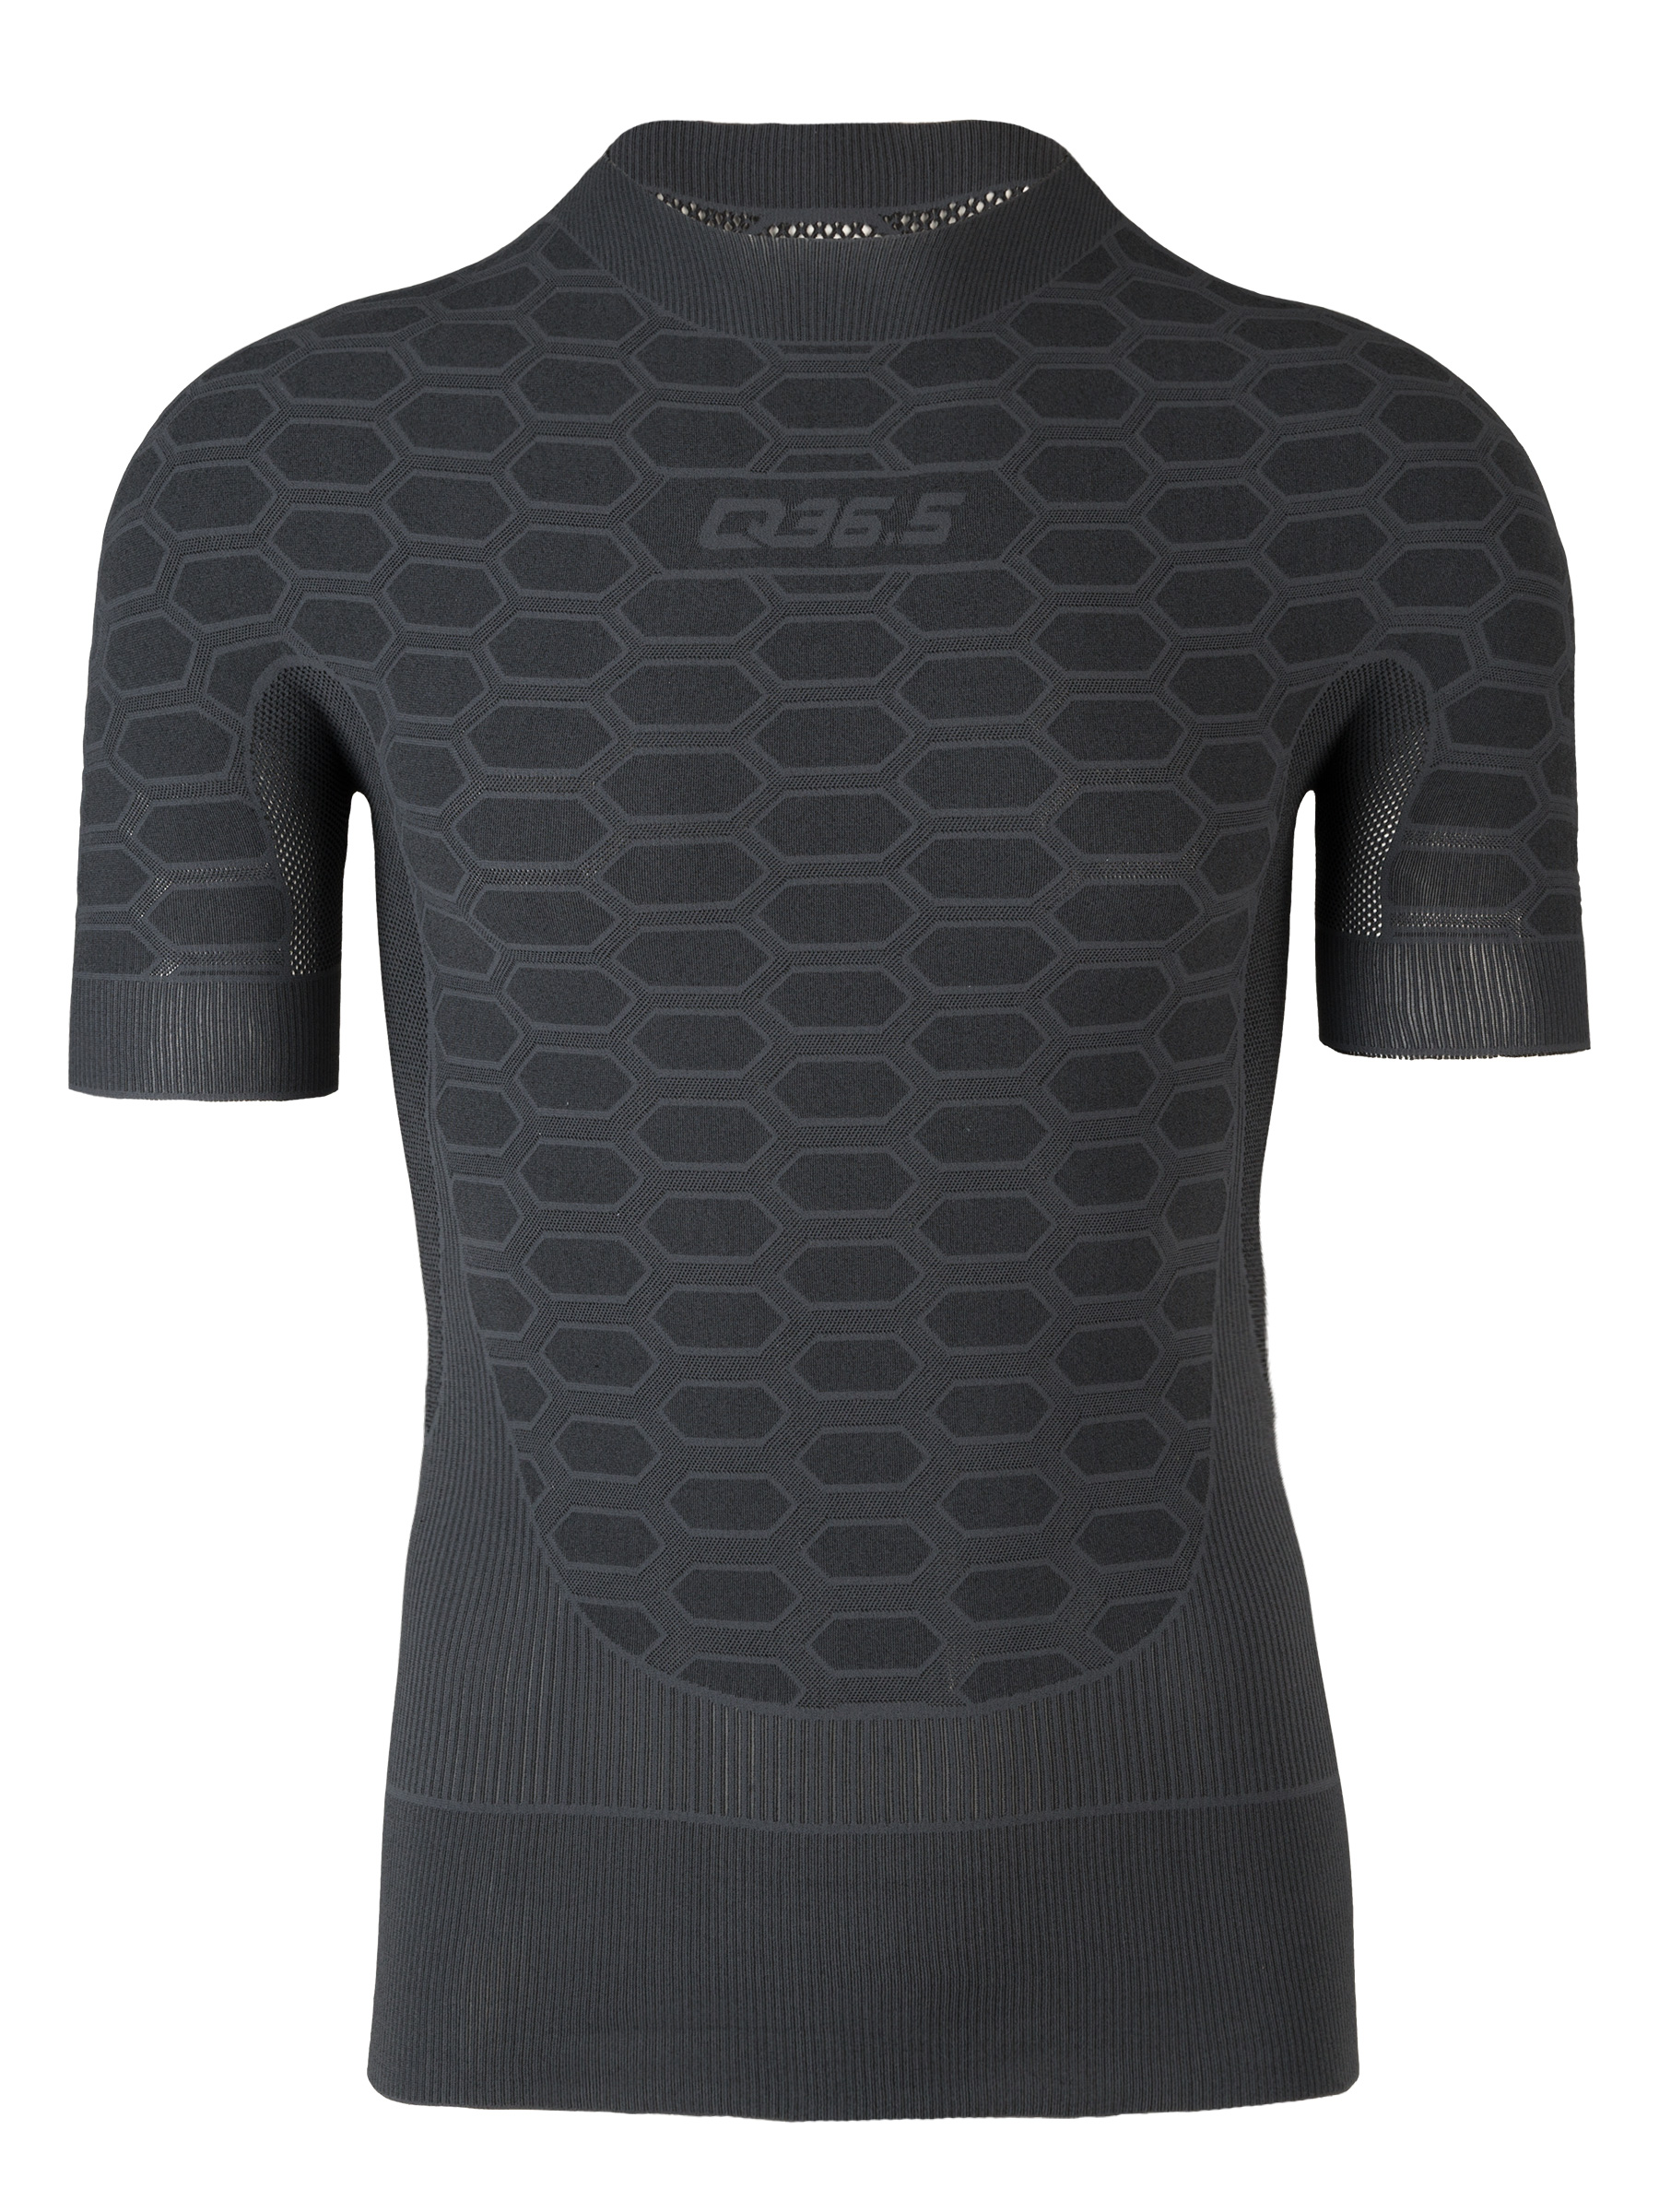 cycling base layer 2 short sleeve